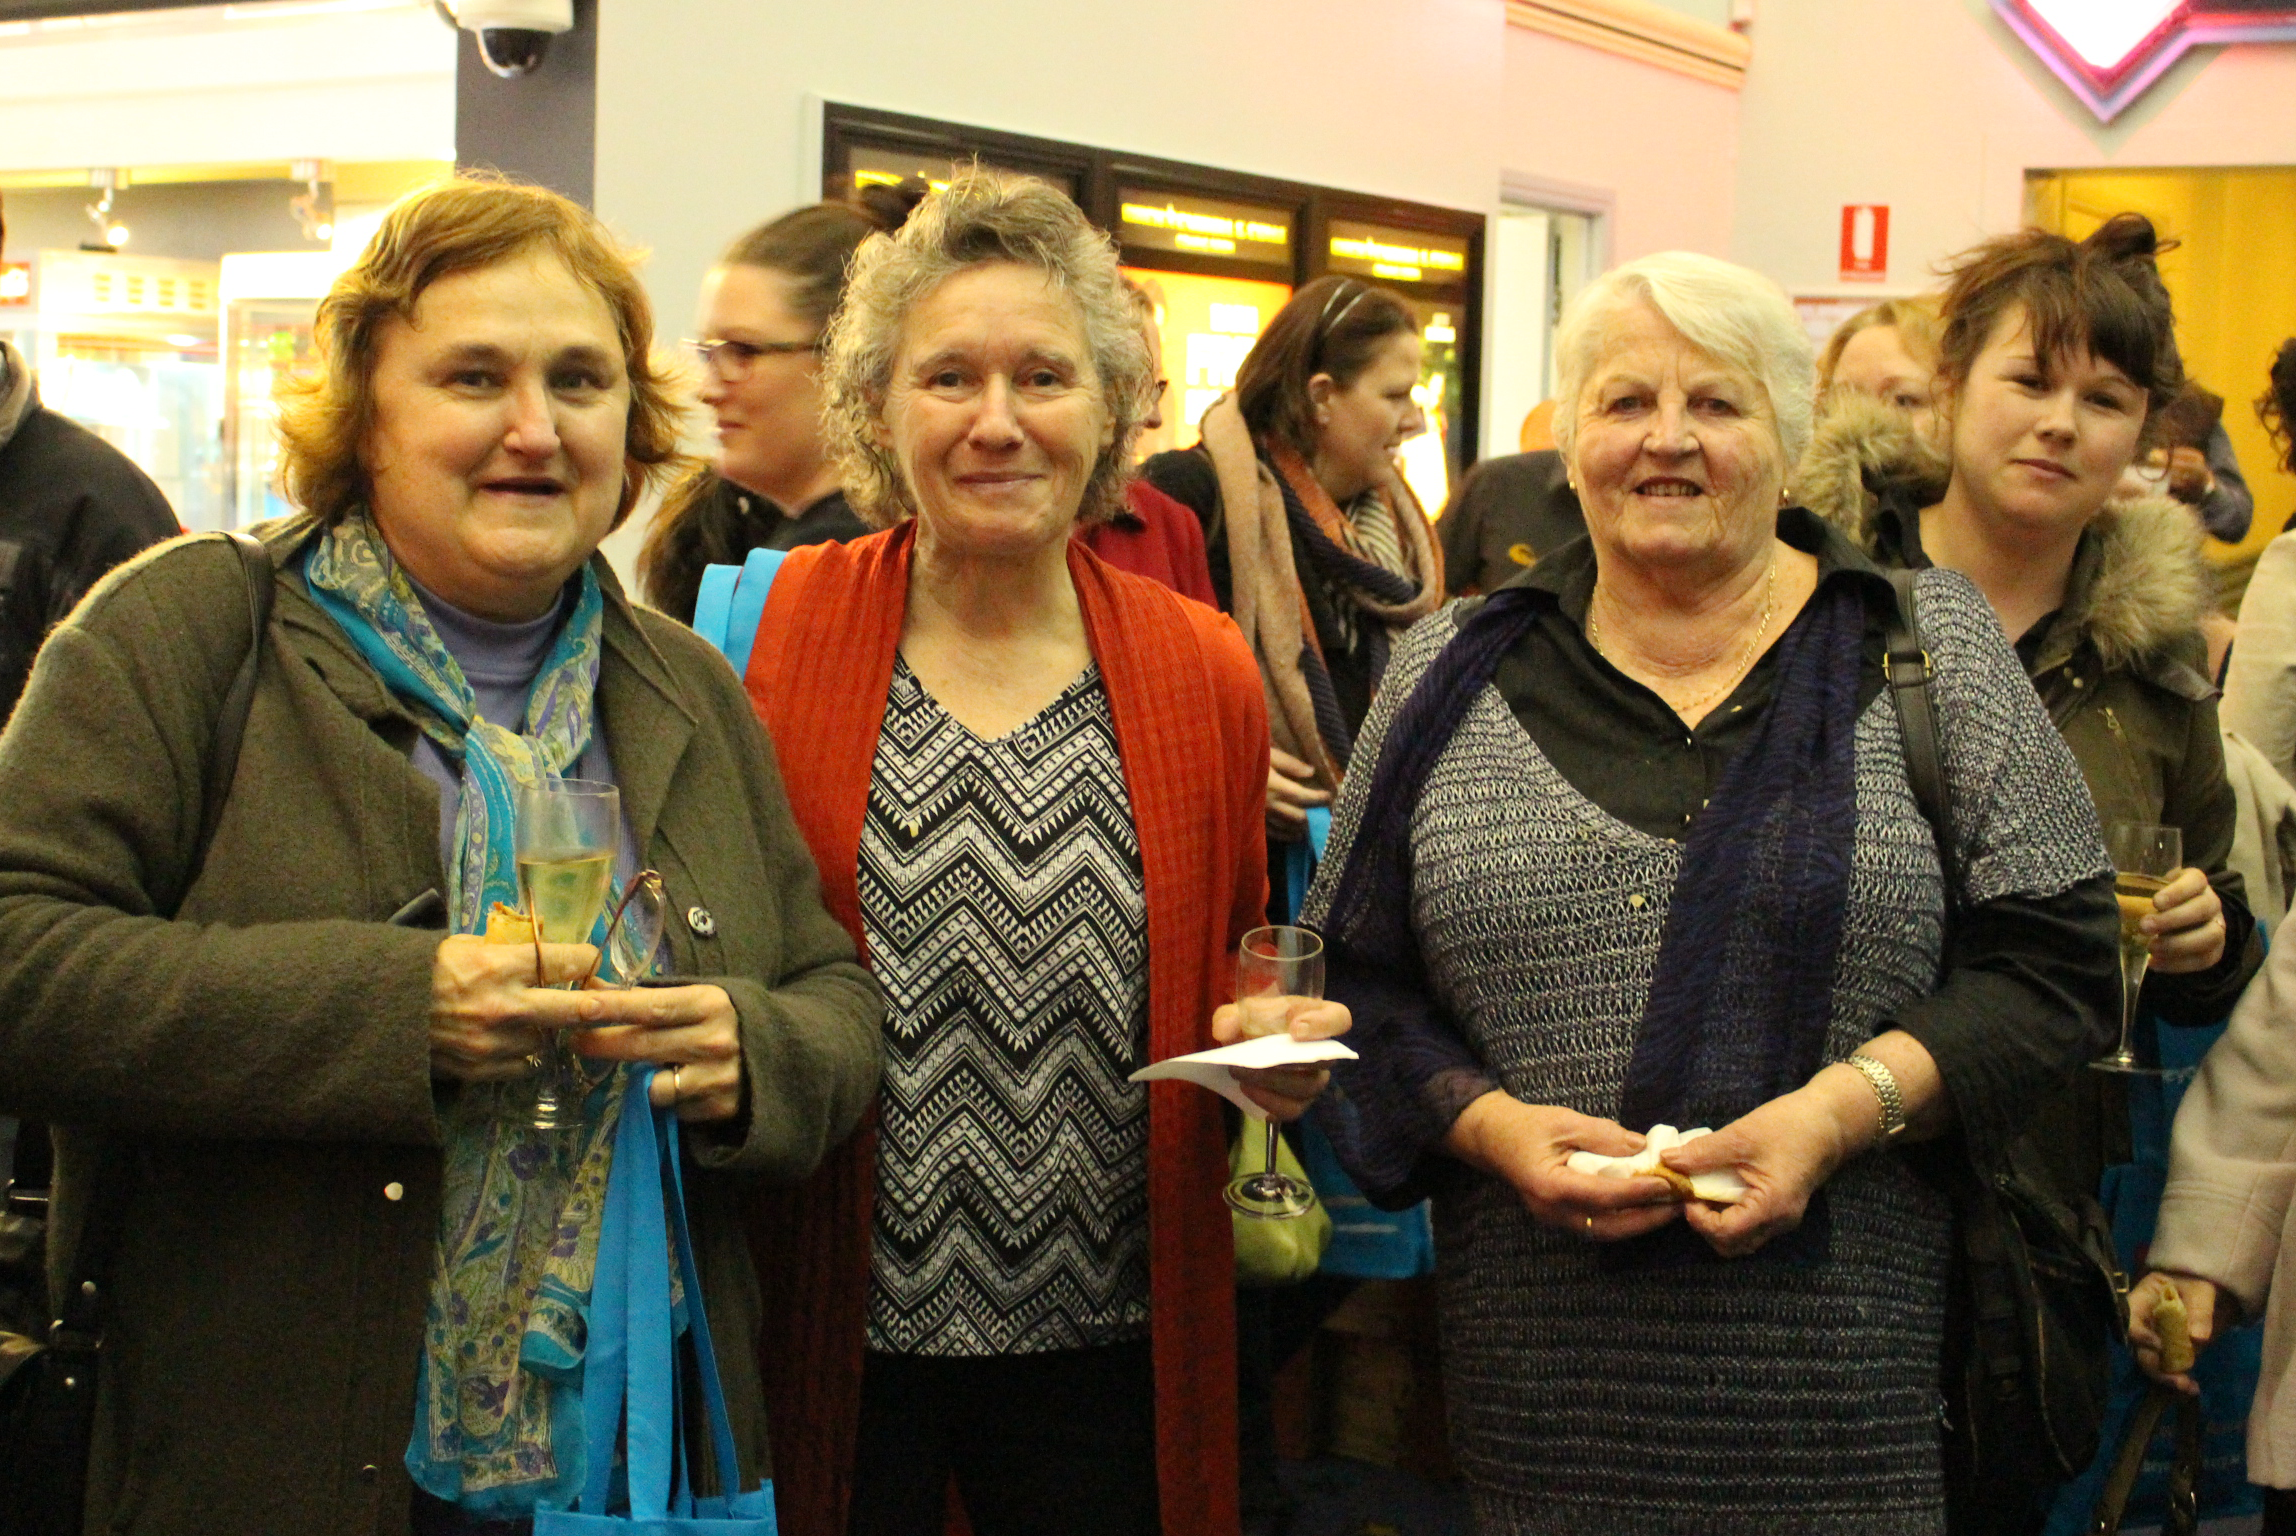 At the 'Magic in the Moonlight' screening at The Strand Cinemas in Toowoomba.